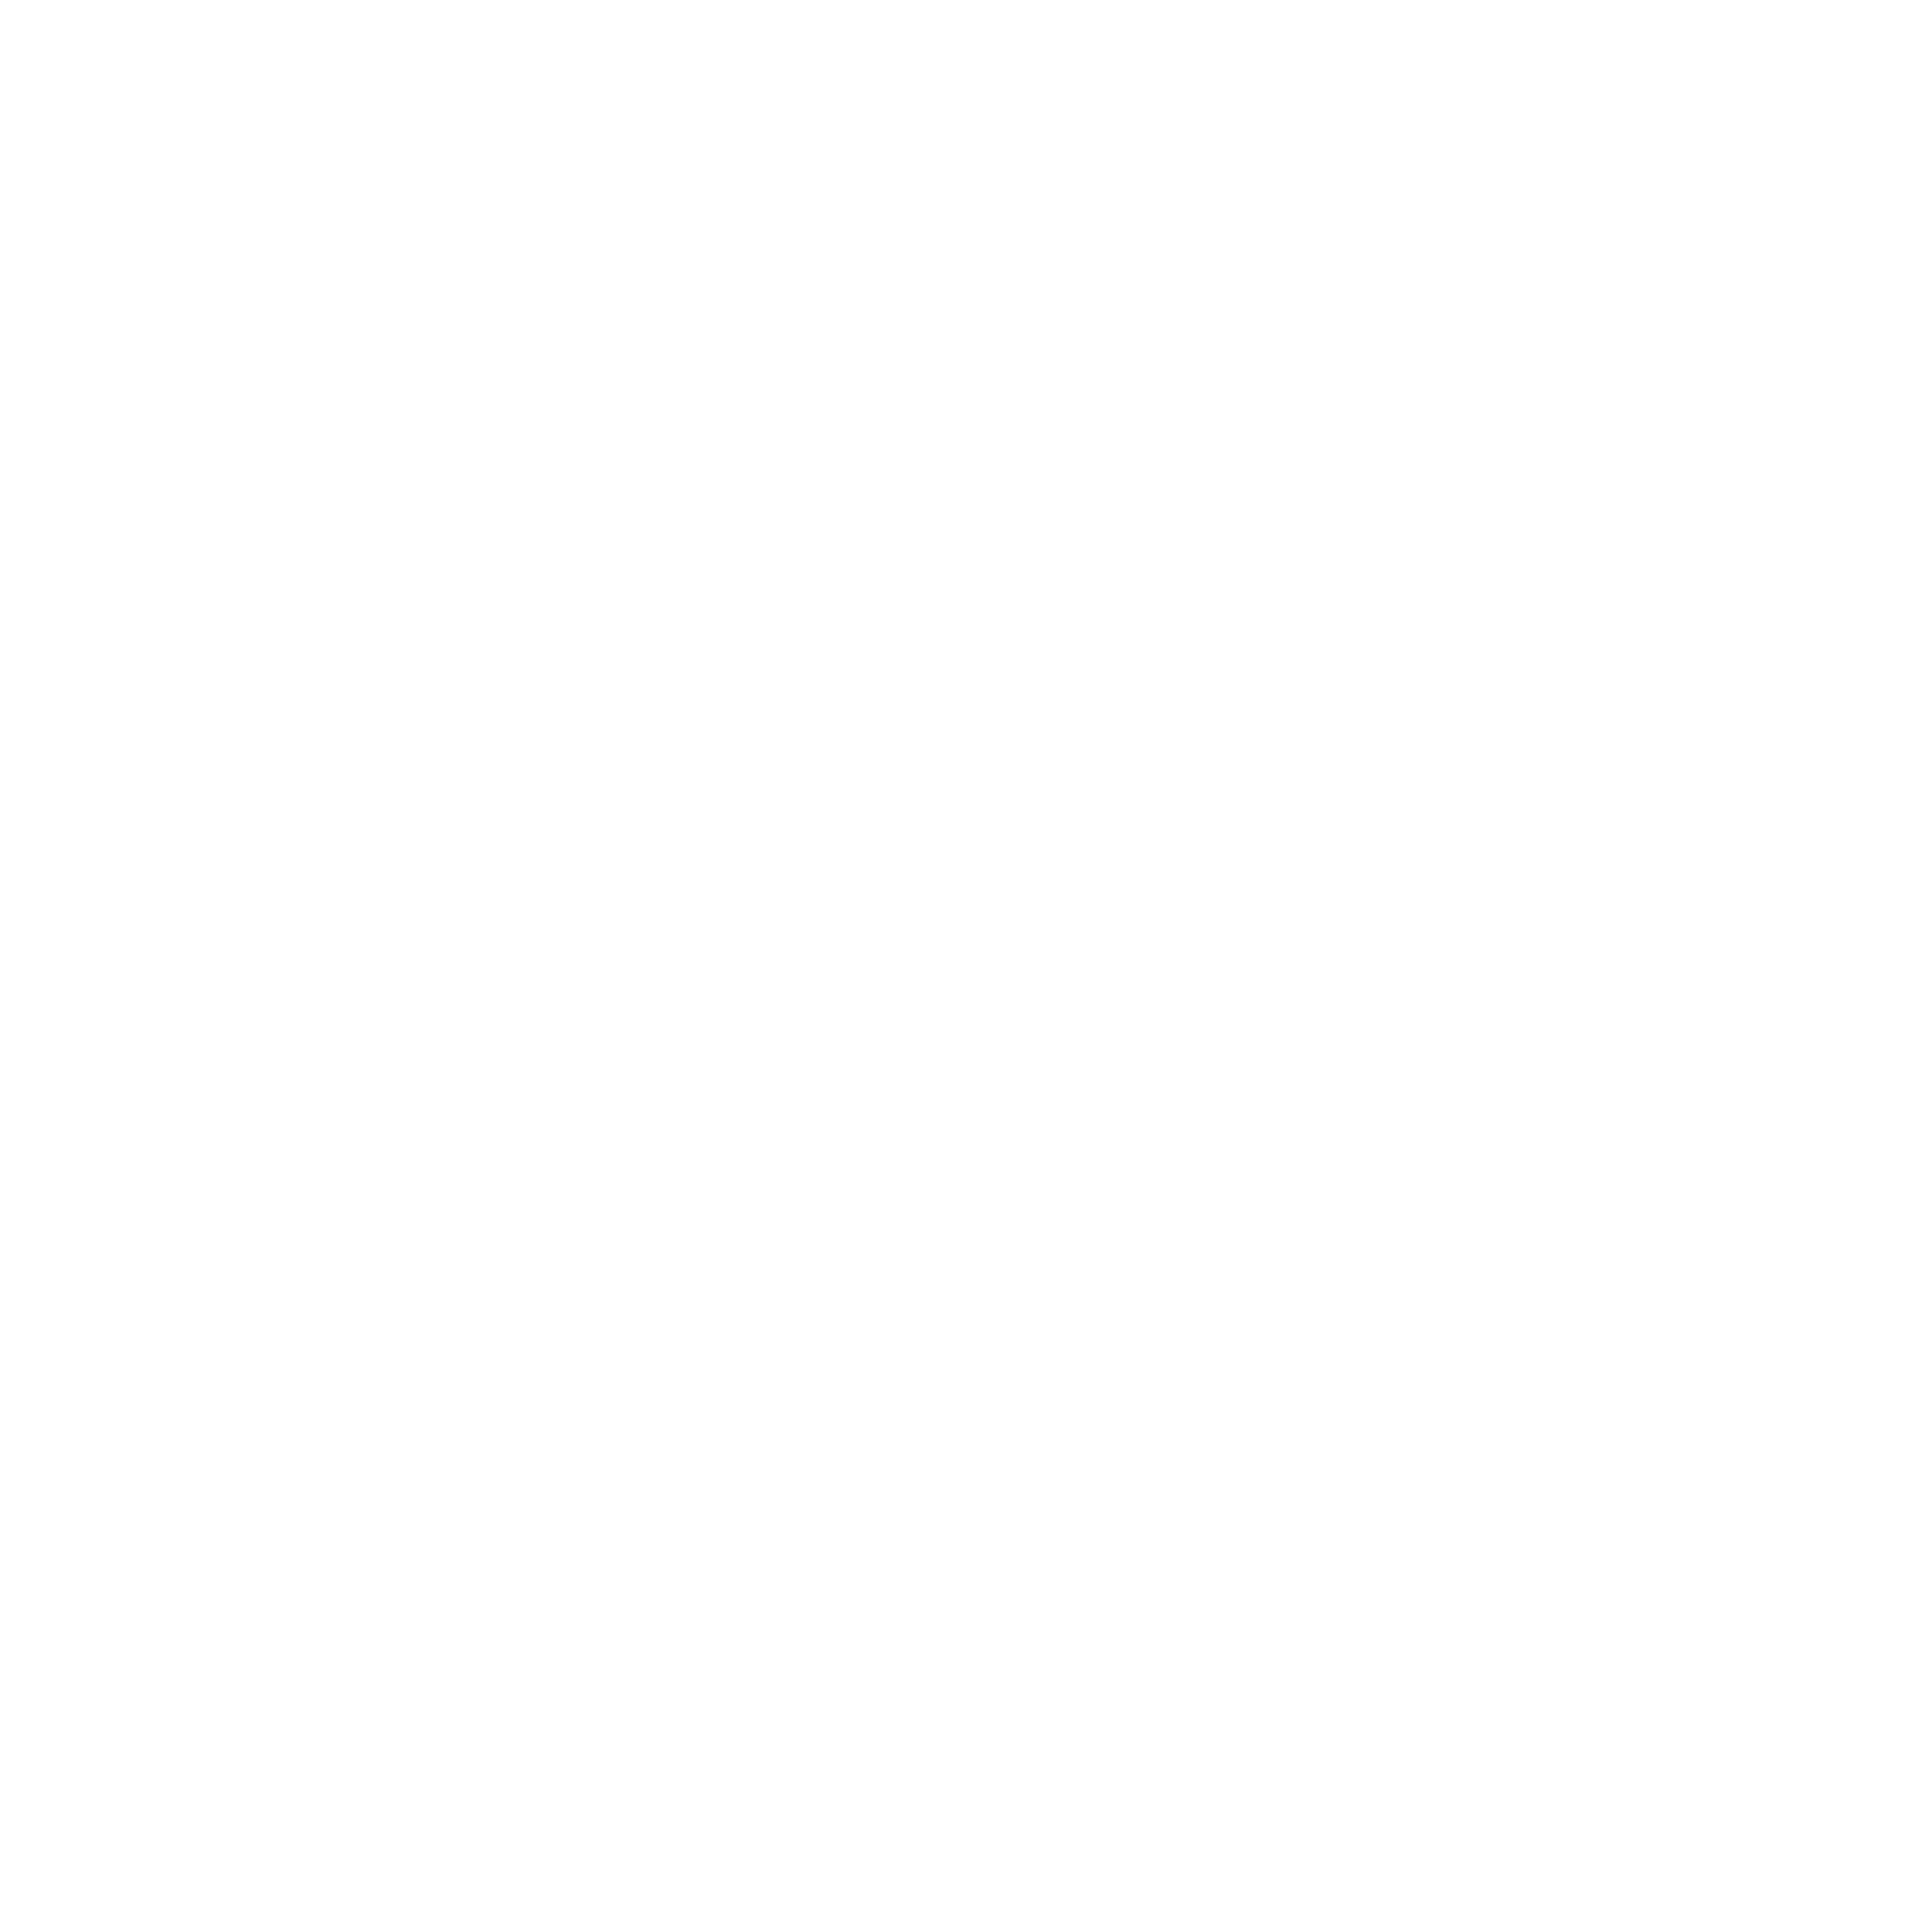 logo-white-william-hill.png